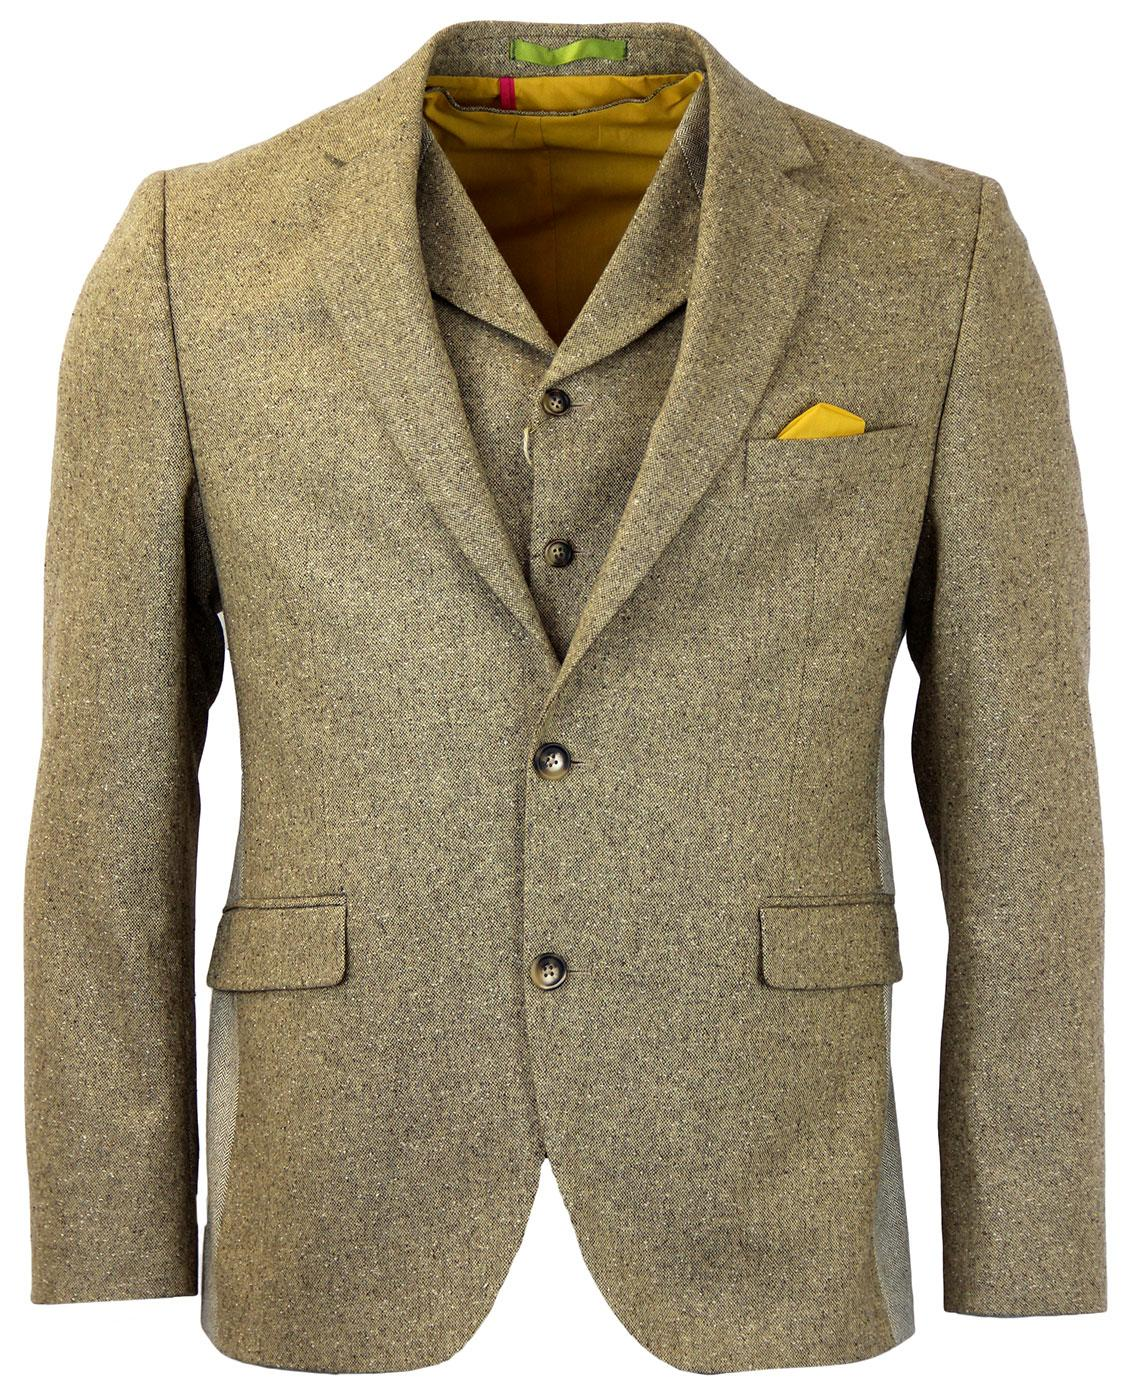 GIBSON LONDON 2 Button Donegal Suit Jacket GOLD